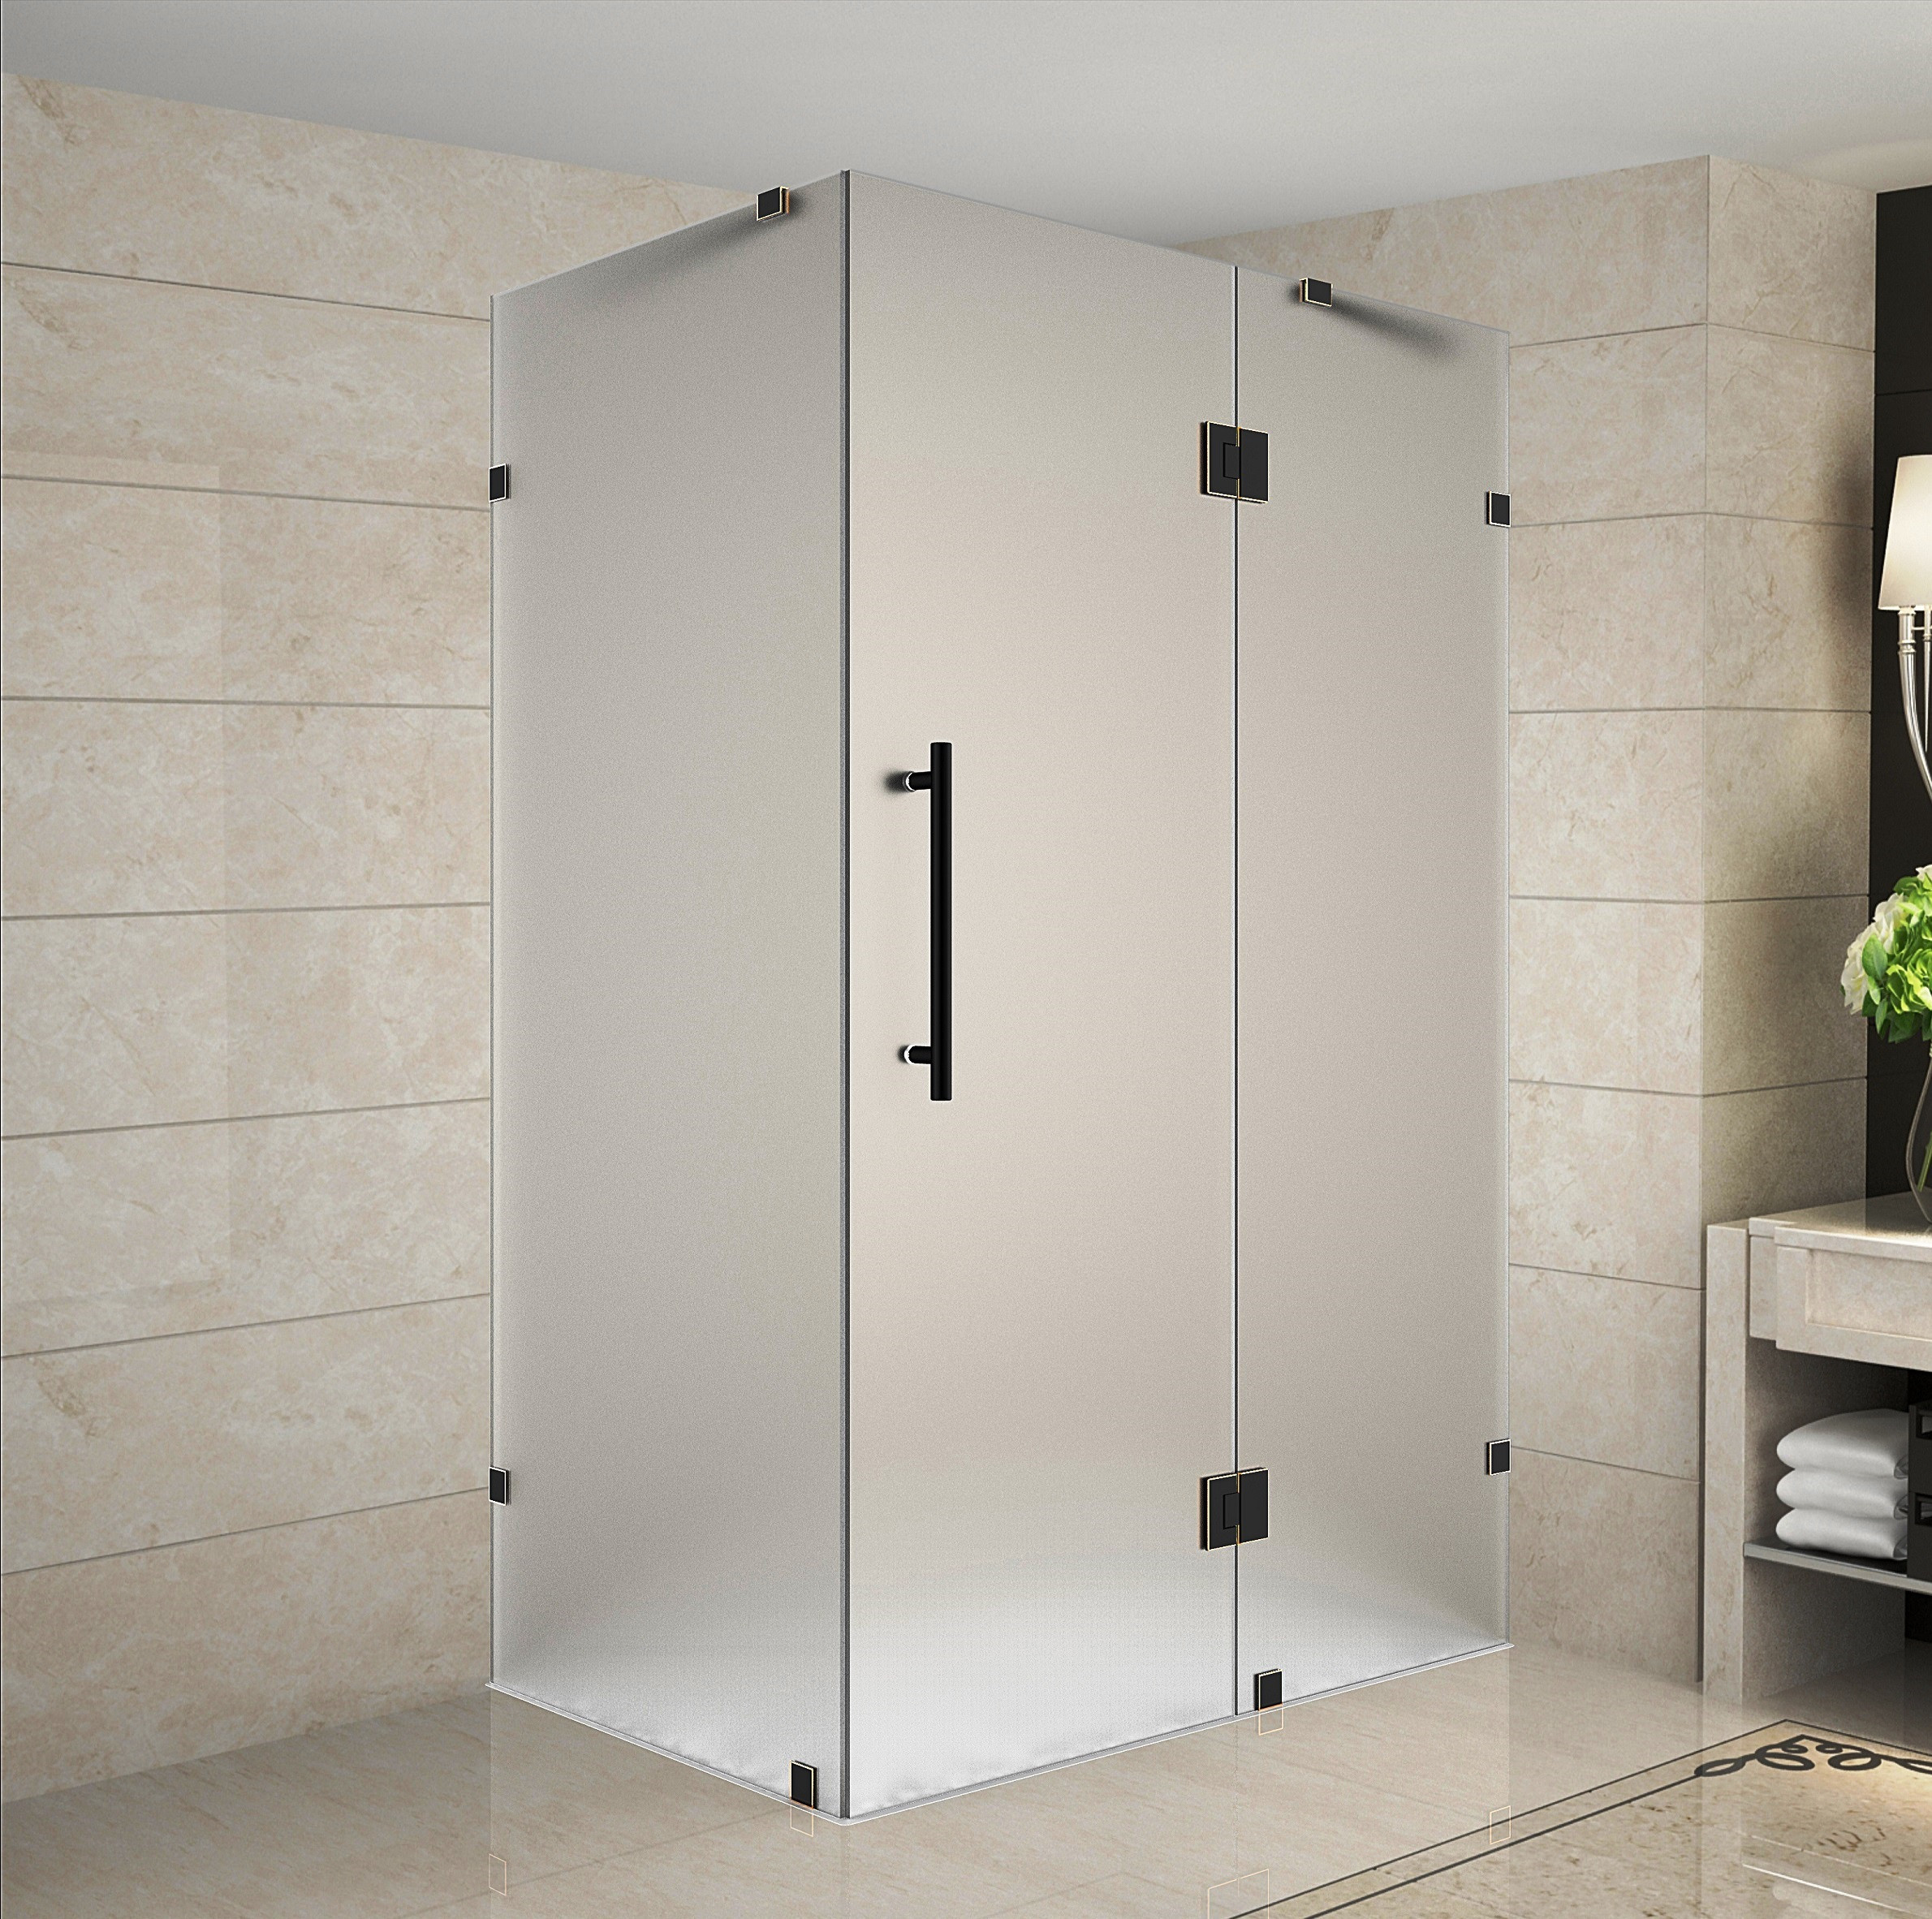 Aston Global SEN987F-ORB-3532-10 Frameless Frosted Glass Shower Enclosure In Oil Rubbed Bronze